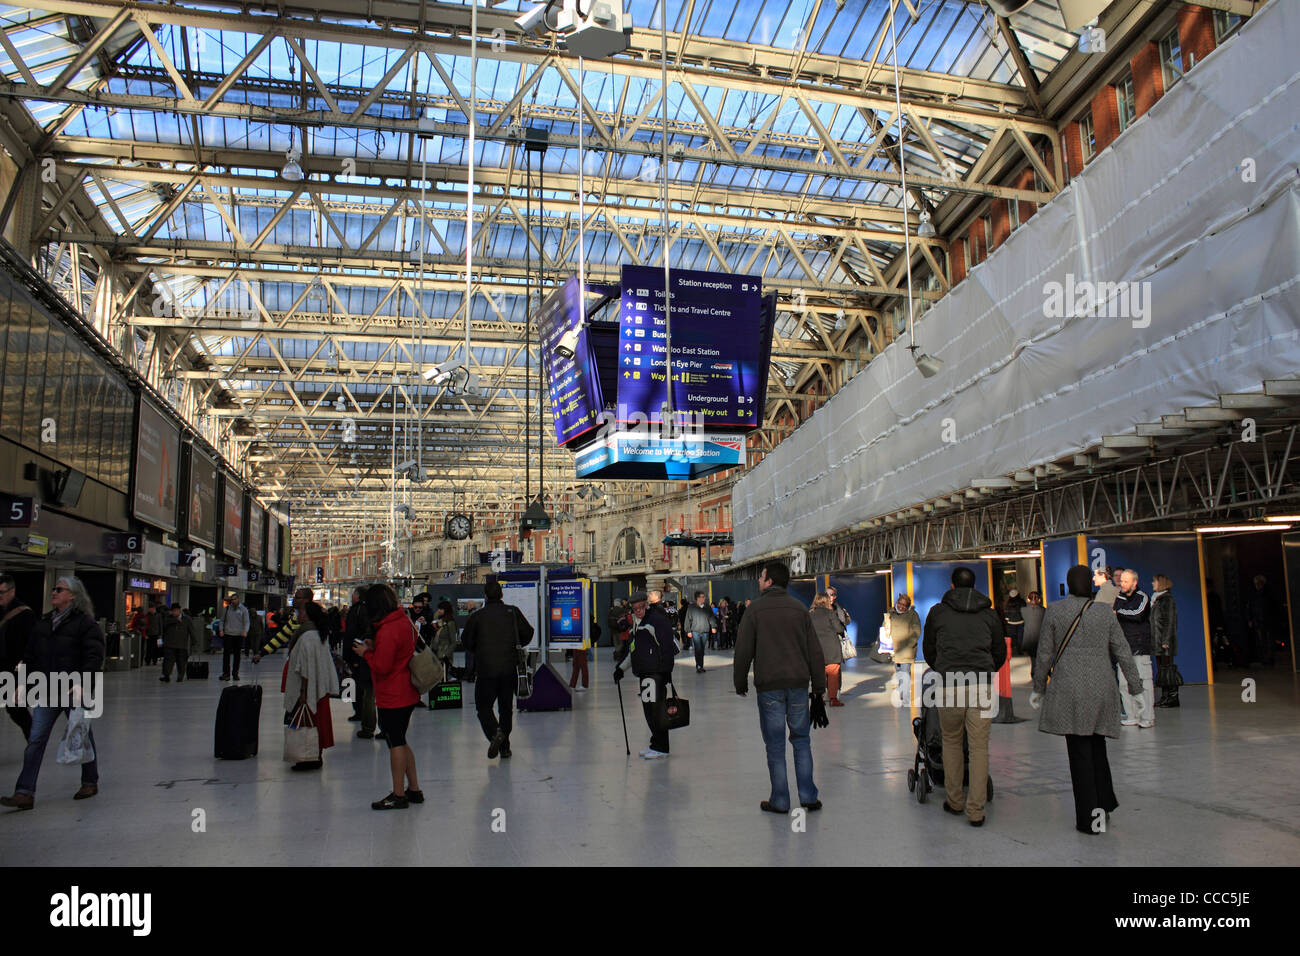 Waterloo station, railway terminus for south west trains. London England UK - Stock Image